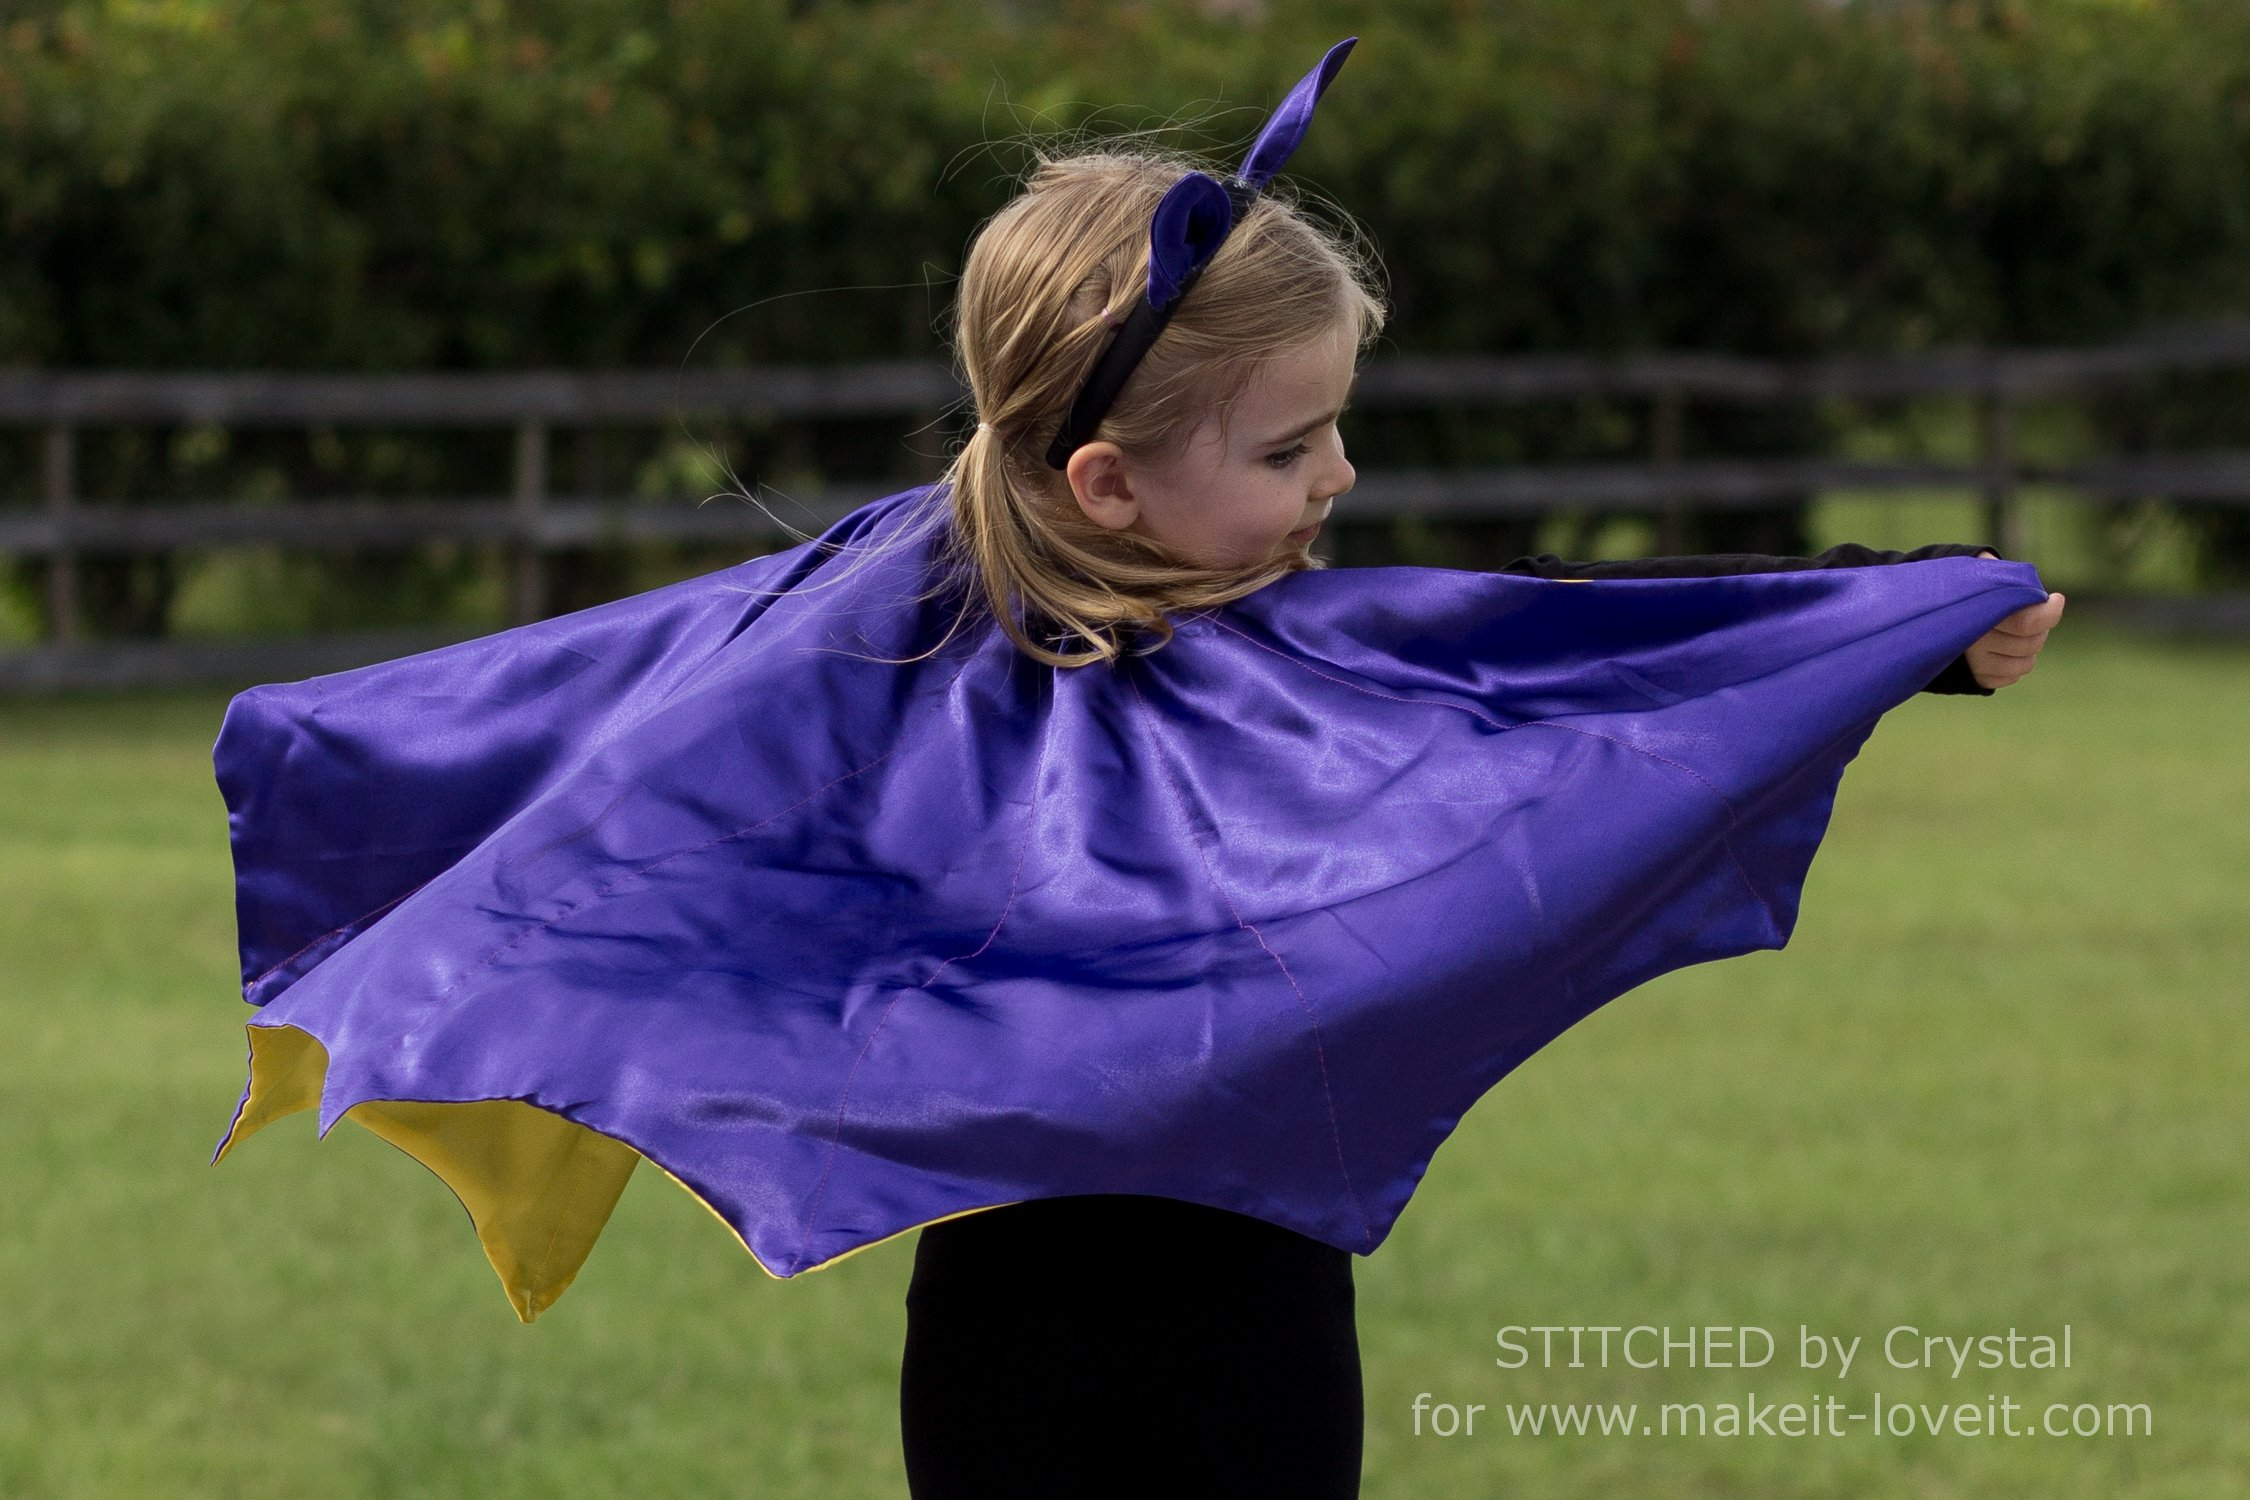 Sew A Reversible Halloween Cape....Perfect for Bats, Witches, and Vampires! | via makeit-loveit.com